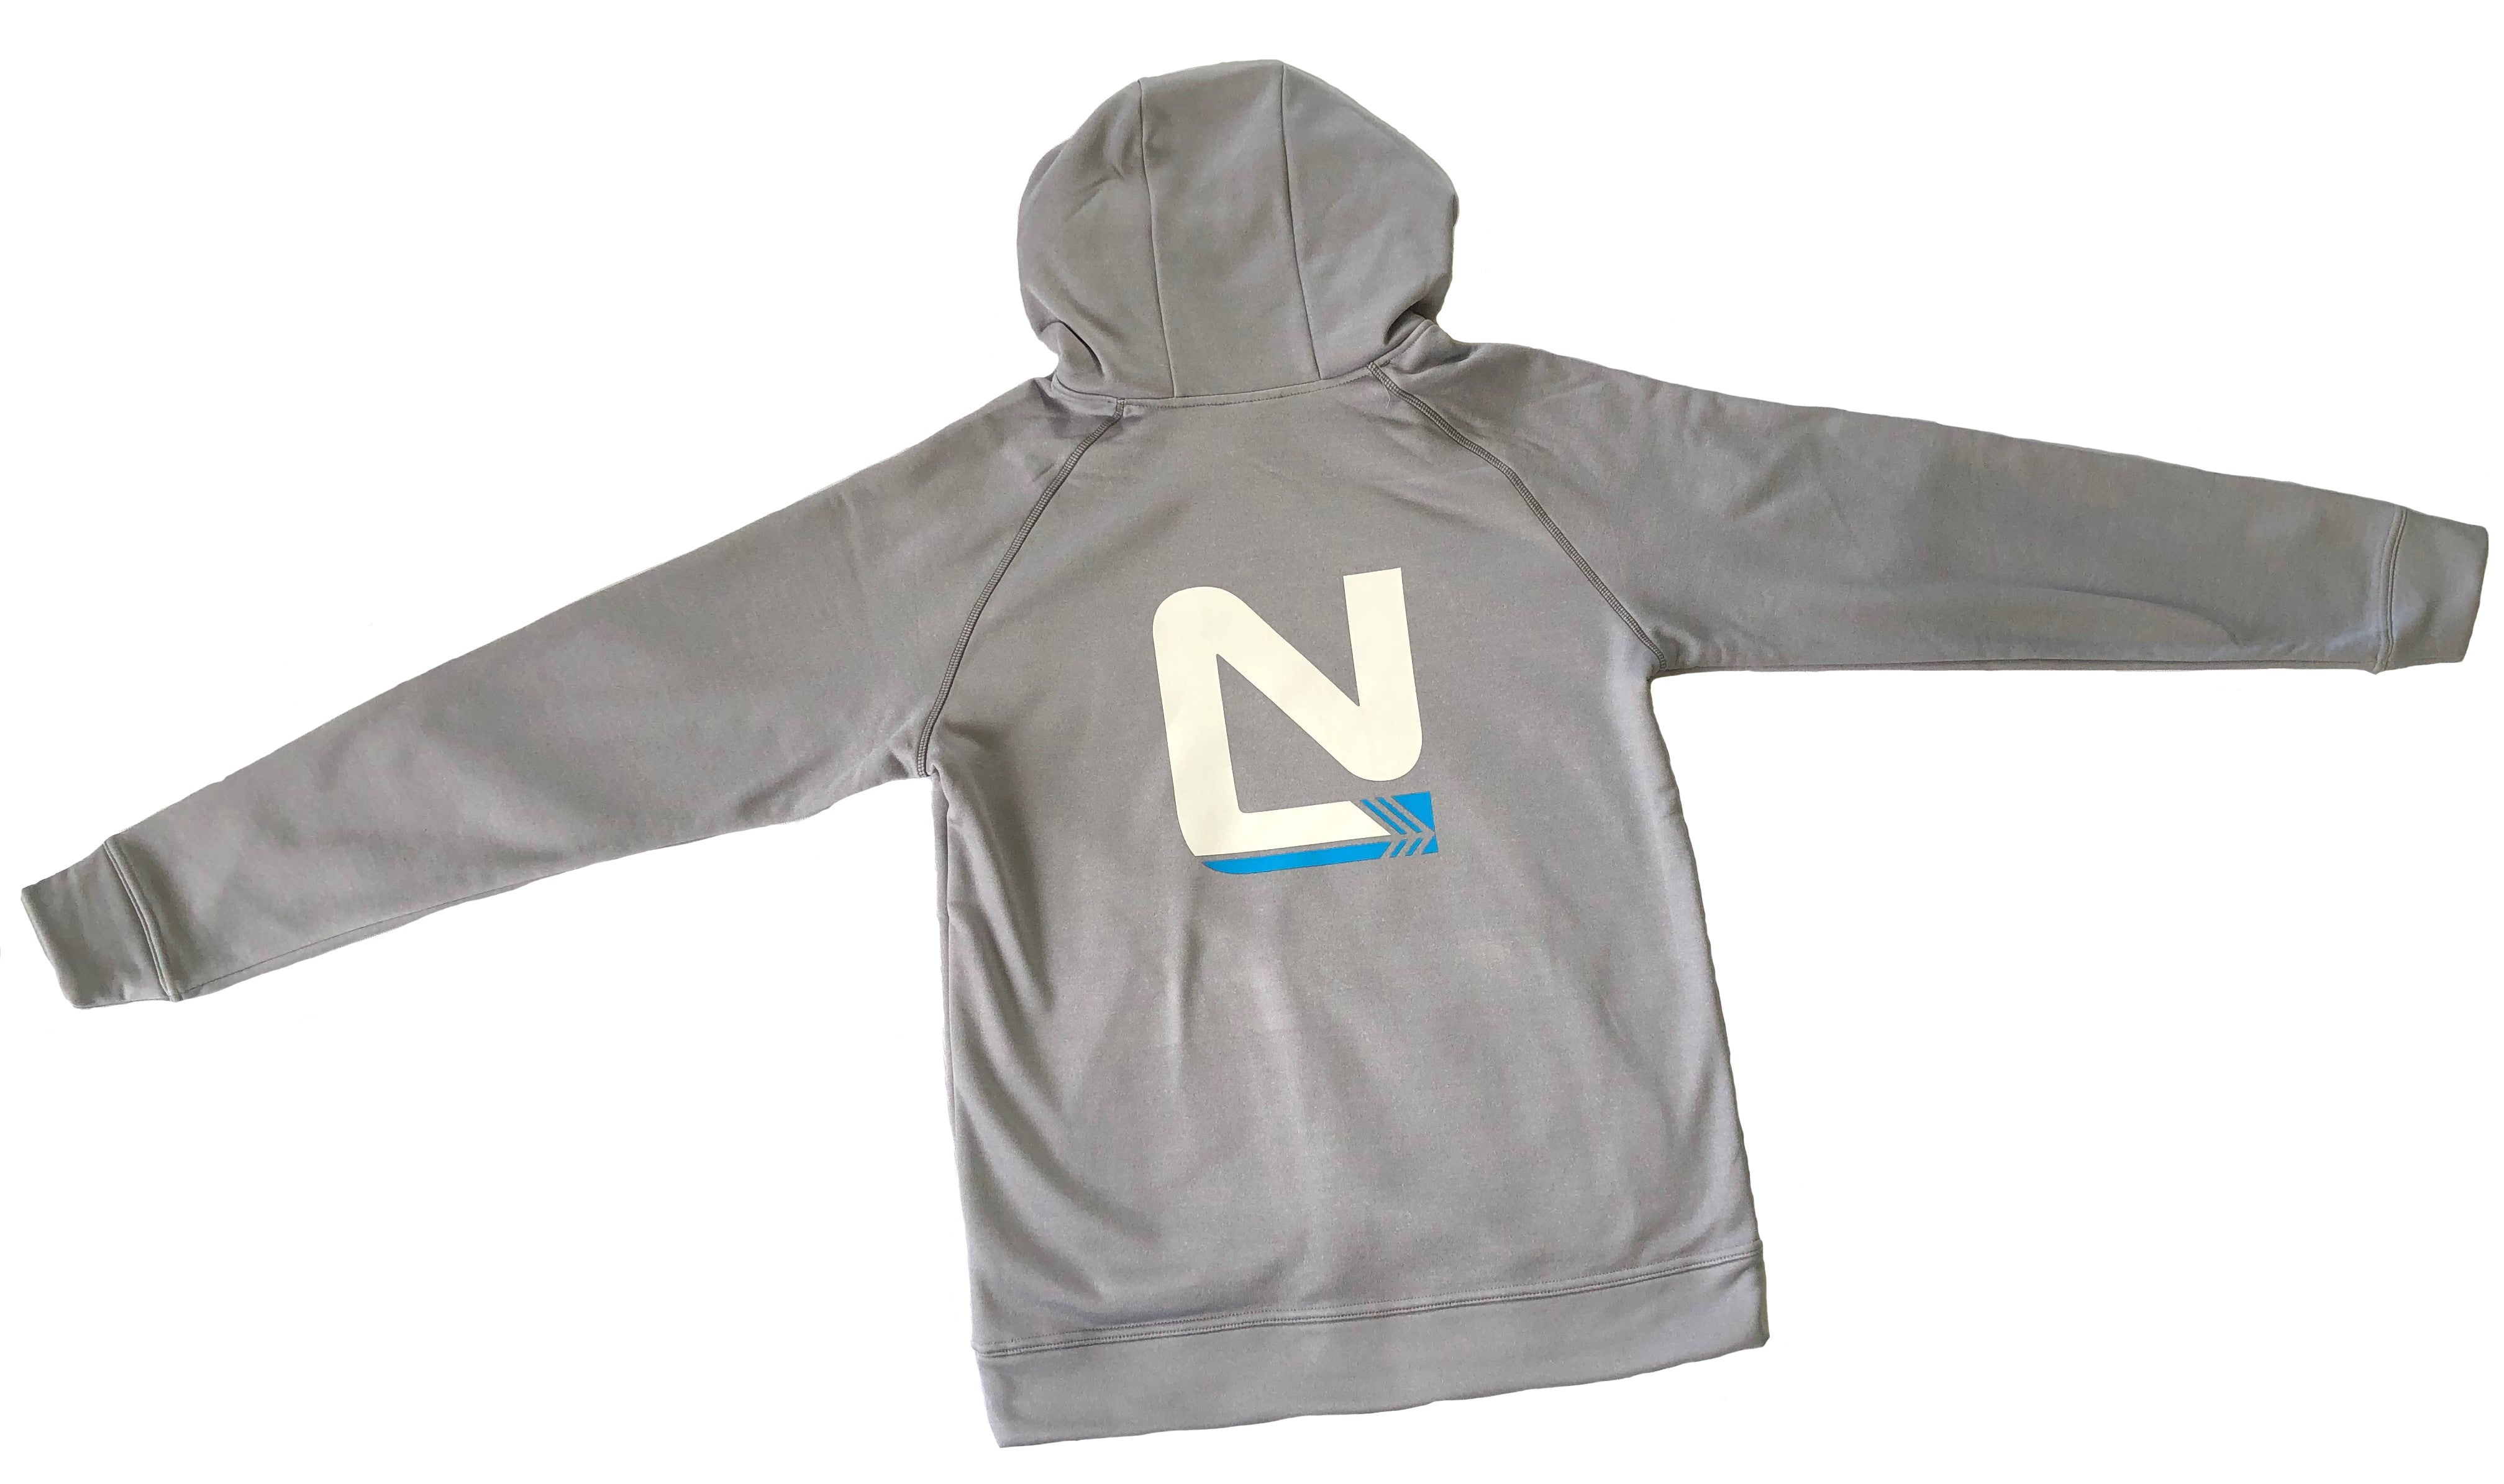 Grey Hoodie - No Limits, Small N Left, Large N Back